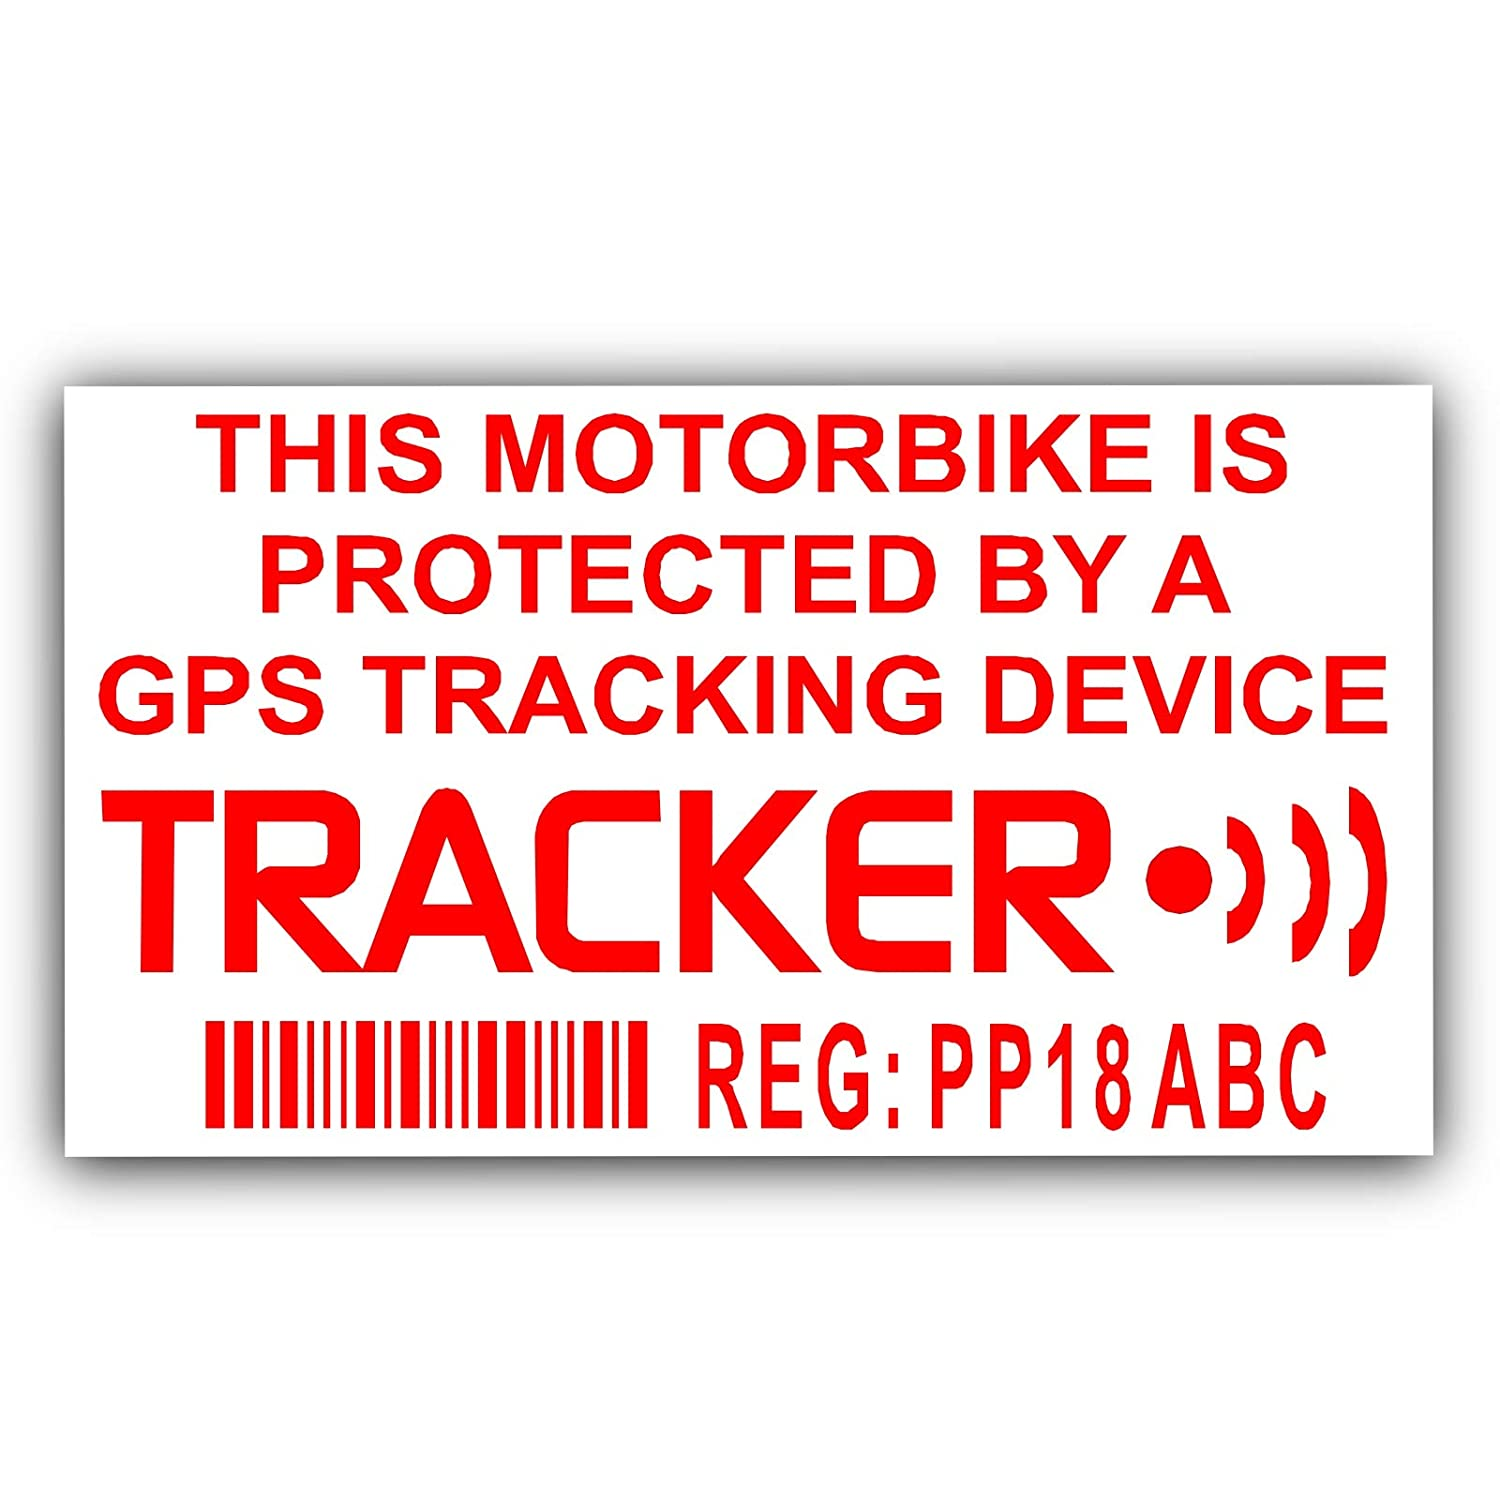 4 x Motorbike Dummy/Fake GPS Personalised Tracker Device Unit Security Alarm System Warning Window Stickers with Registration, Tag Number Printed-Police Monitored Sign For Motorcycle Bike Platinum Place PPGPSMB